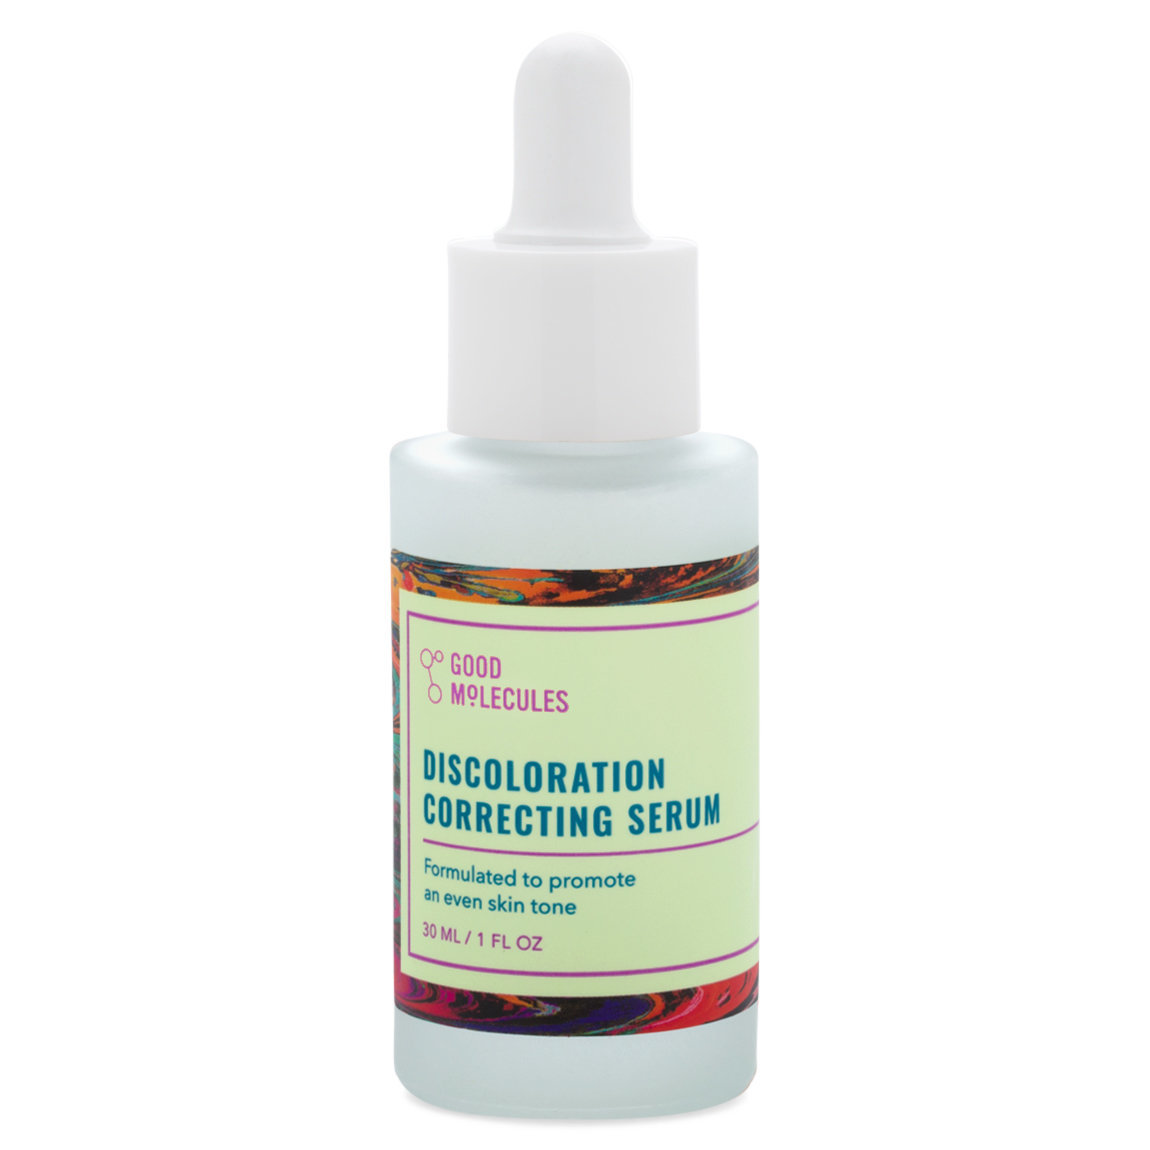 Good Molecules - Discoloration Correcting Serum